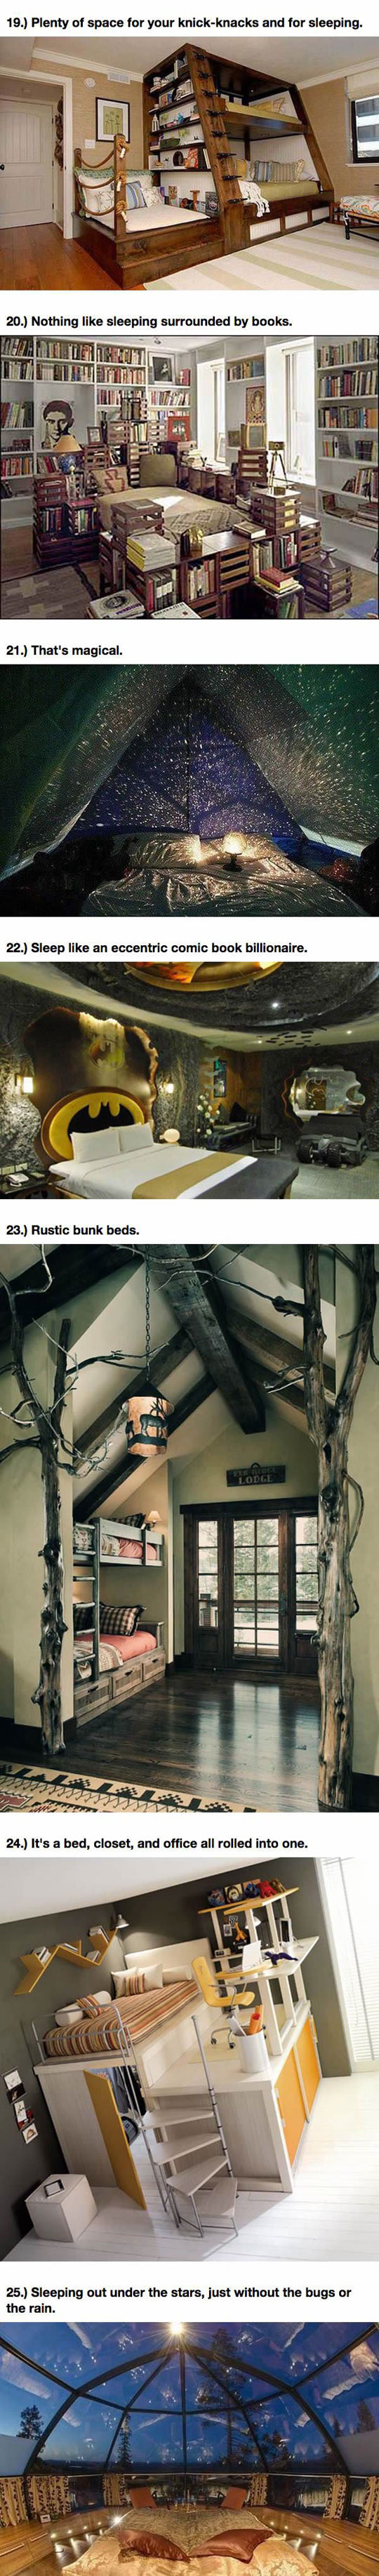 cool-weird-bed-design-stars-Batman